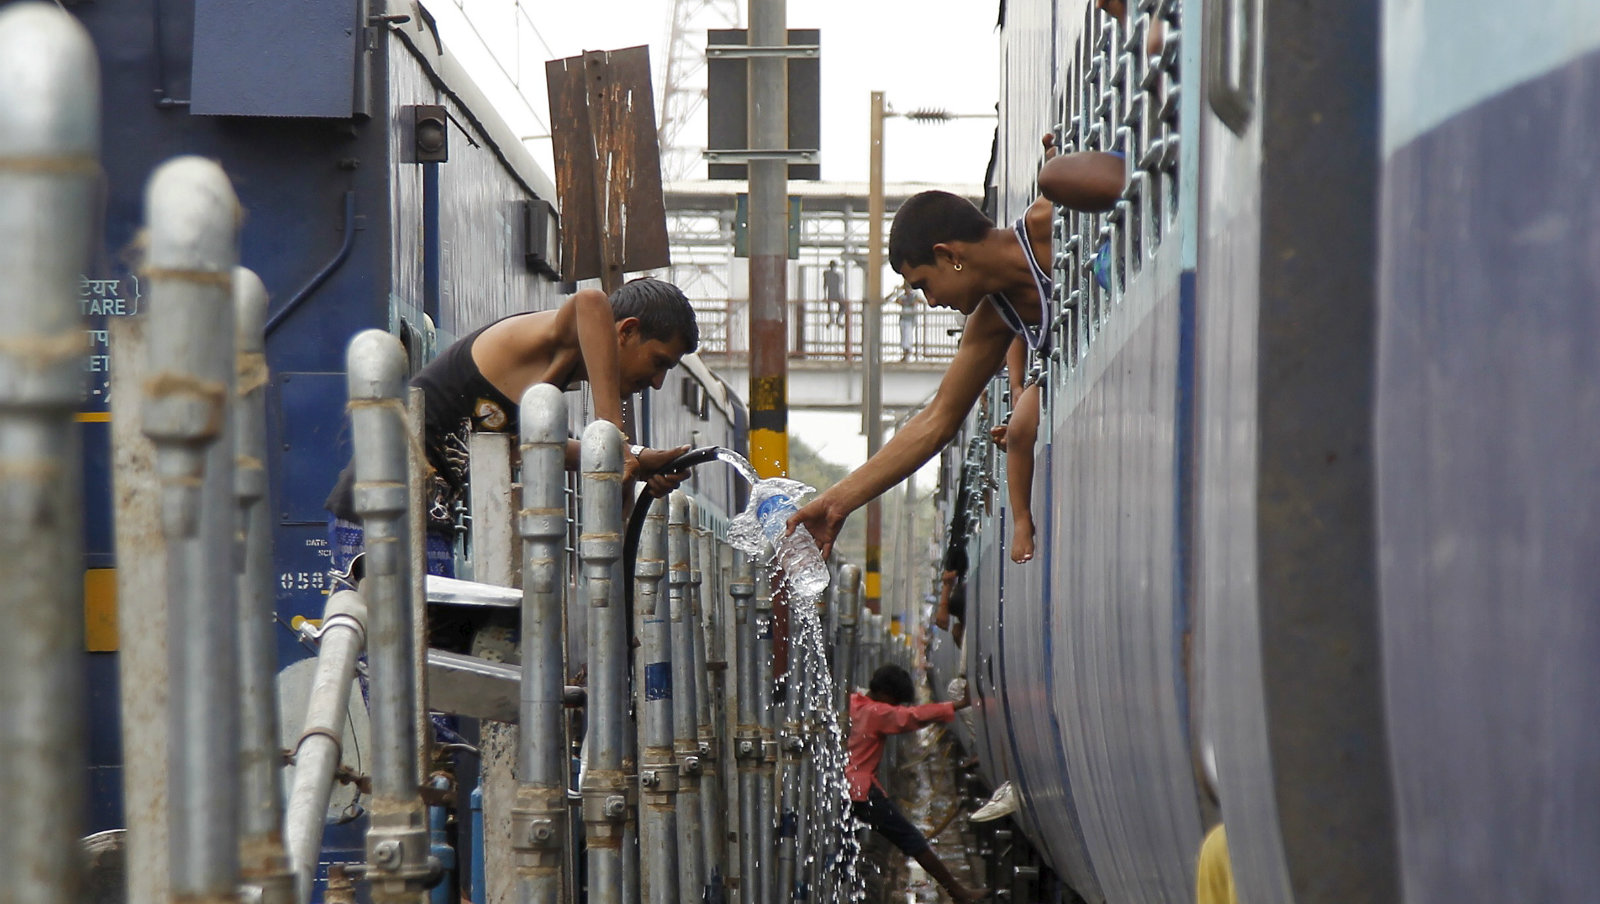 A passenger (R) fills water in a bottle from a pipe that supplies water to trains at a railway station on a hot summer day in Allahabad, India, June 11, 2015. Temperature in Allahabad on Thursday is expected to reach 44 degree Celsius (111.2 degree Fahrenheit), according to India's metrological department website.